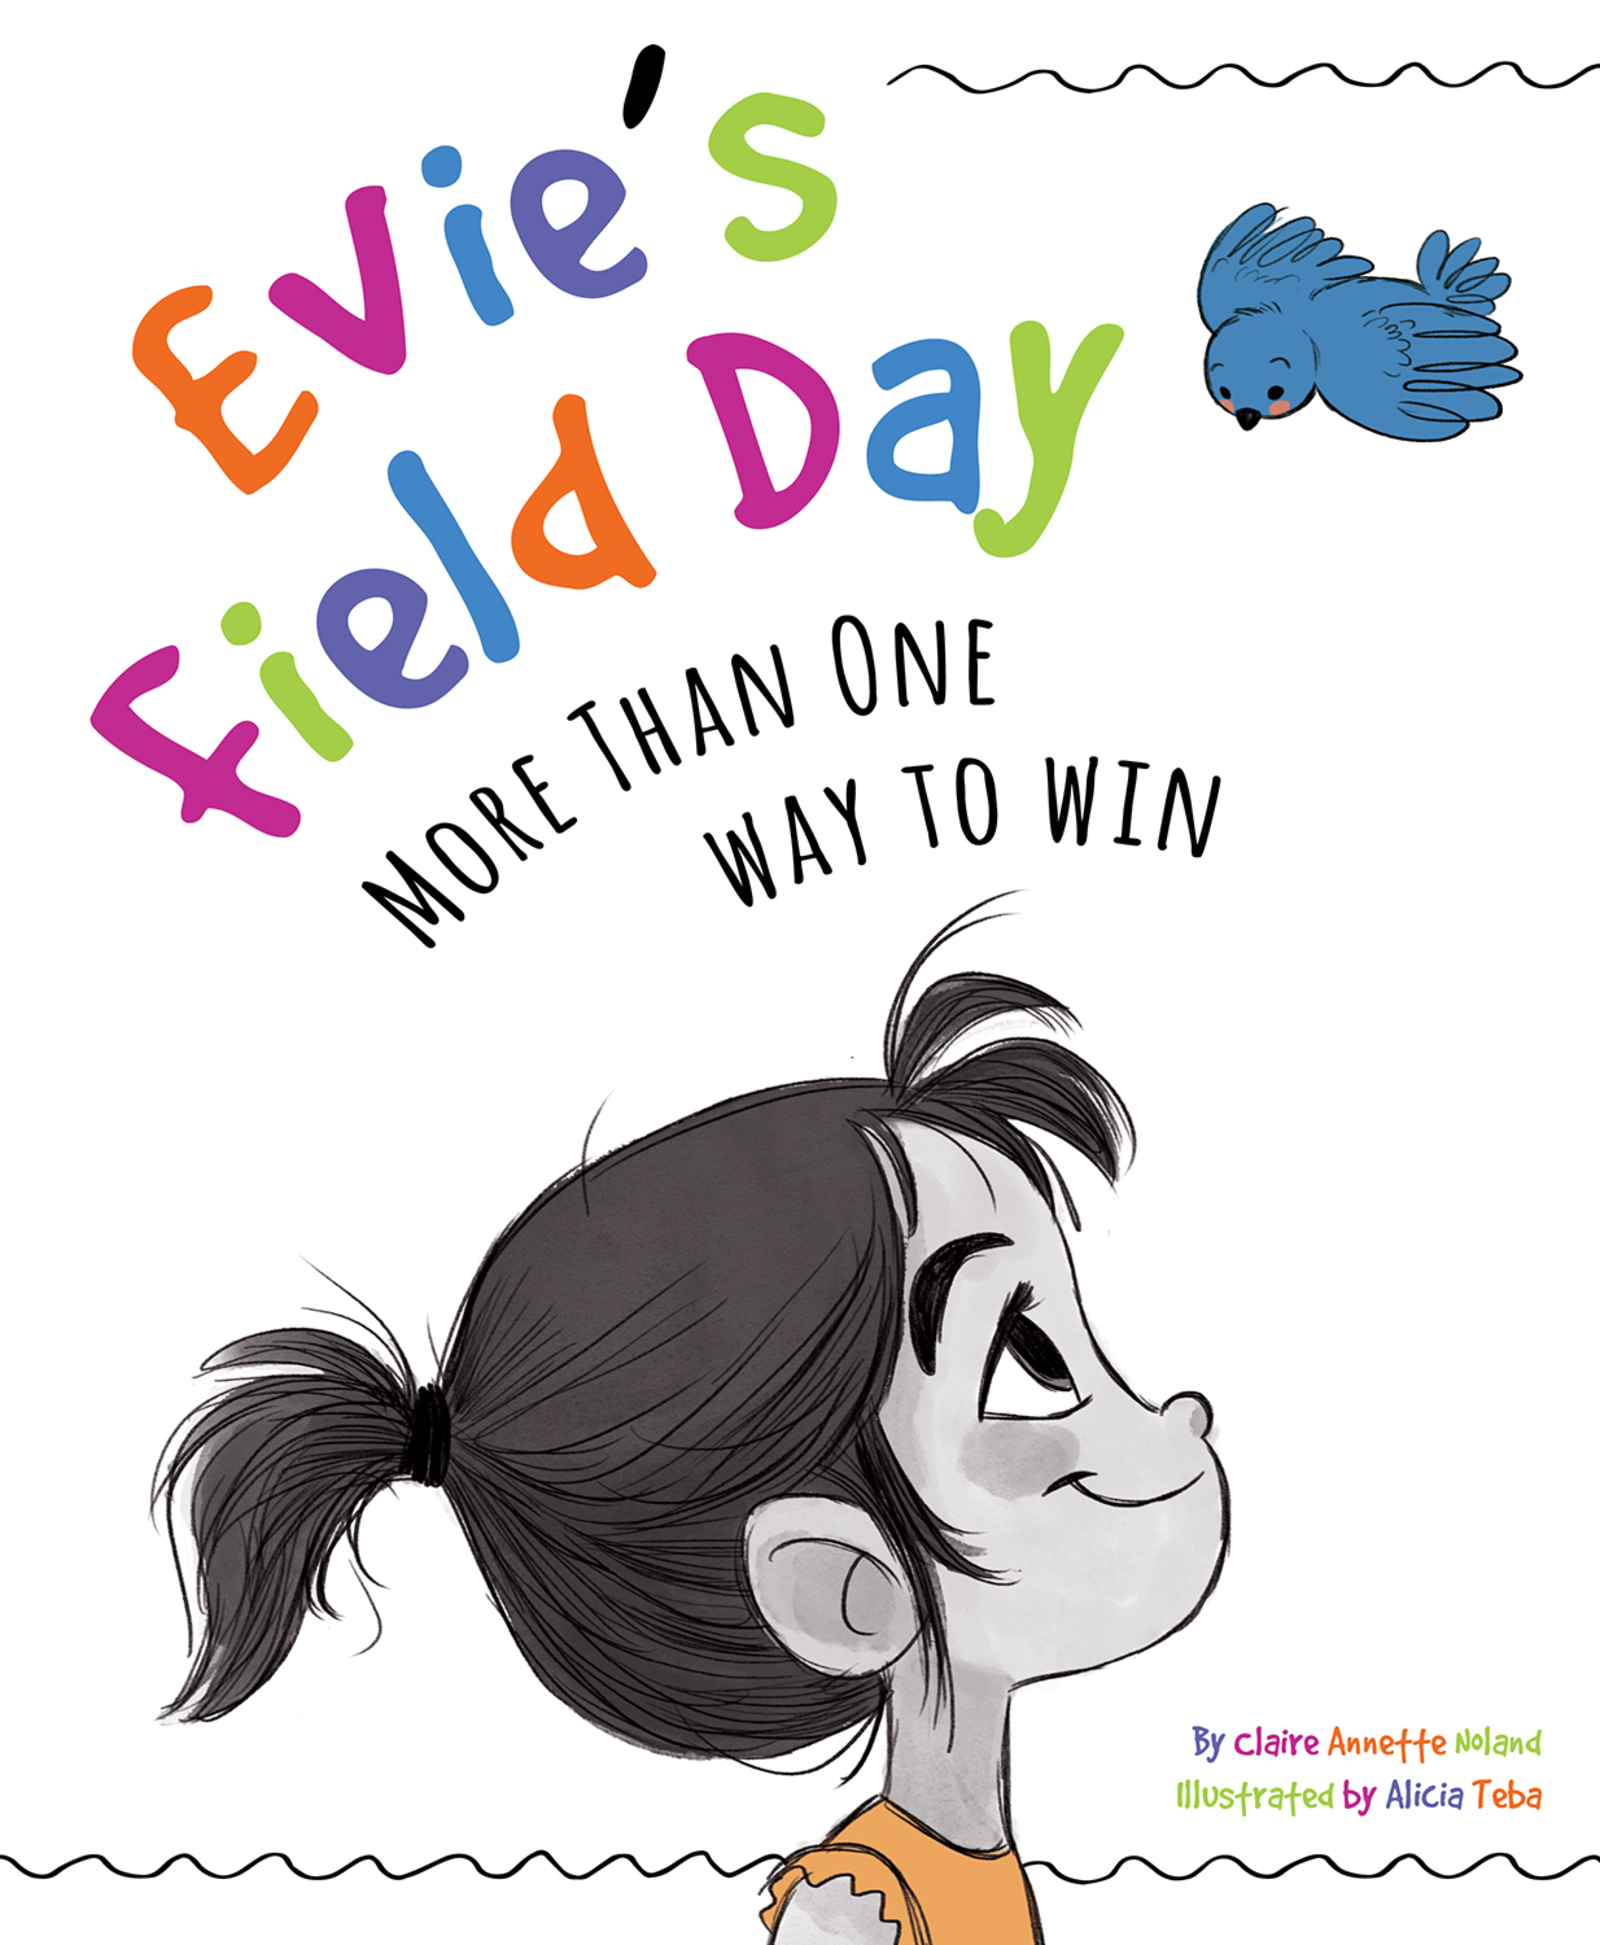 Evie's Field Day [electronic resource] : More than One Way to Win